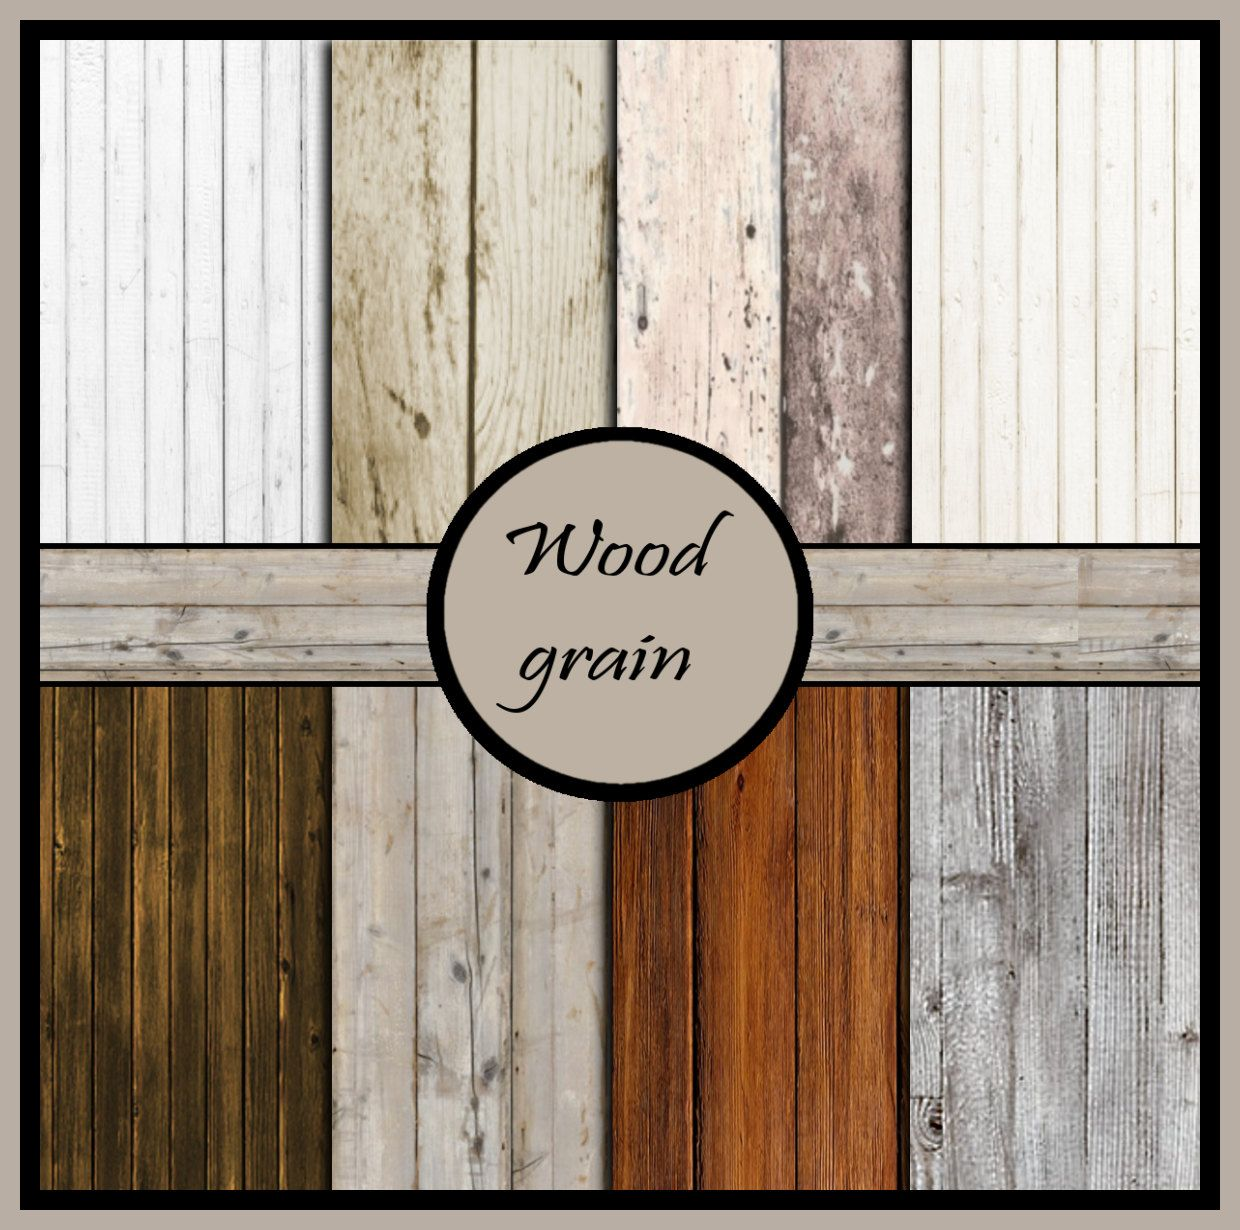 Scrapbook paper wood grain - Wood Grain Digital Scrapbook Paper Pack Digital Paper Paper Pack Digital Download Digital Scrapbook Scrapbooking Wood